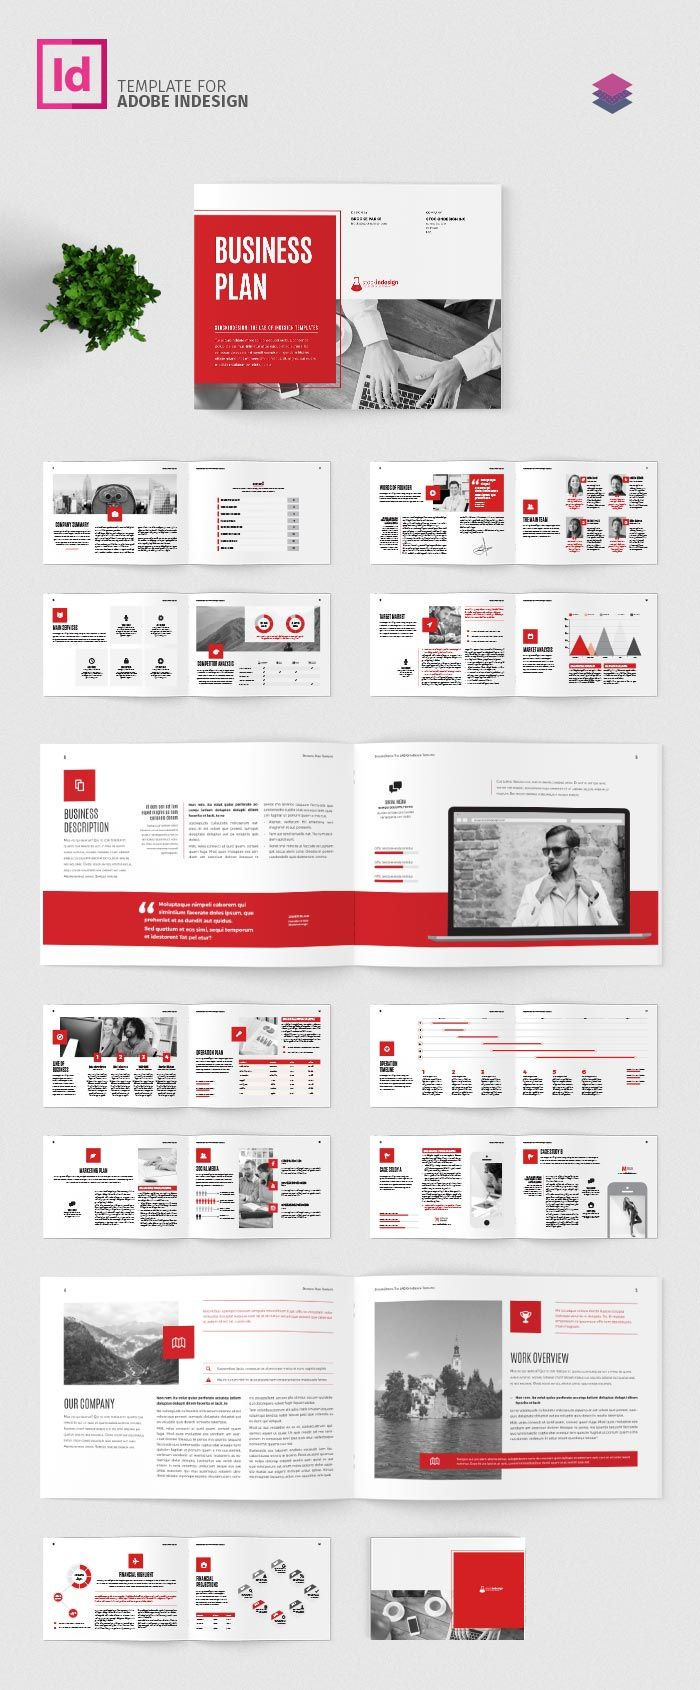 Business plan template landscape book design pinterest business plan template landscape book design pinterest business planning template and design layouts flashek Choice Image